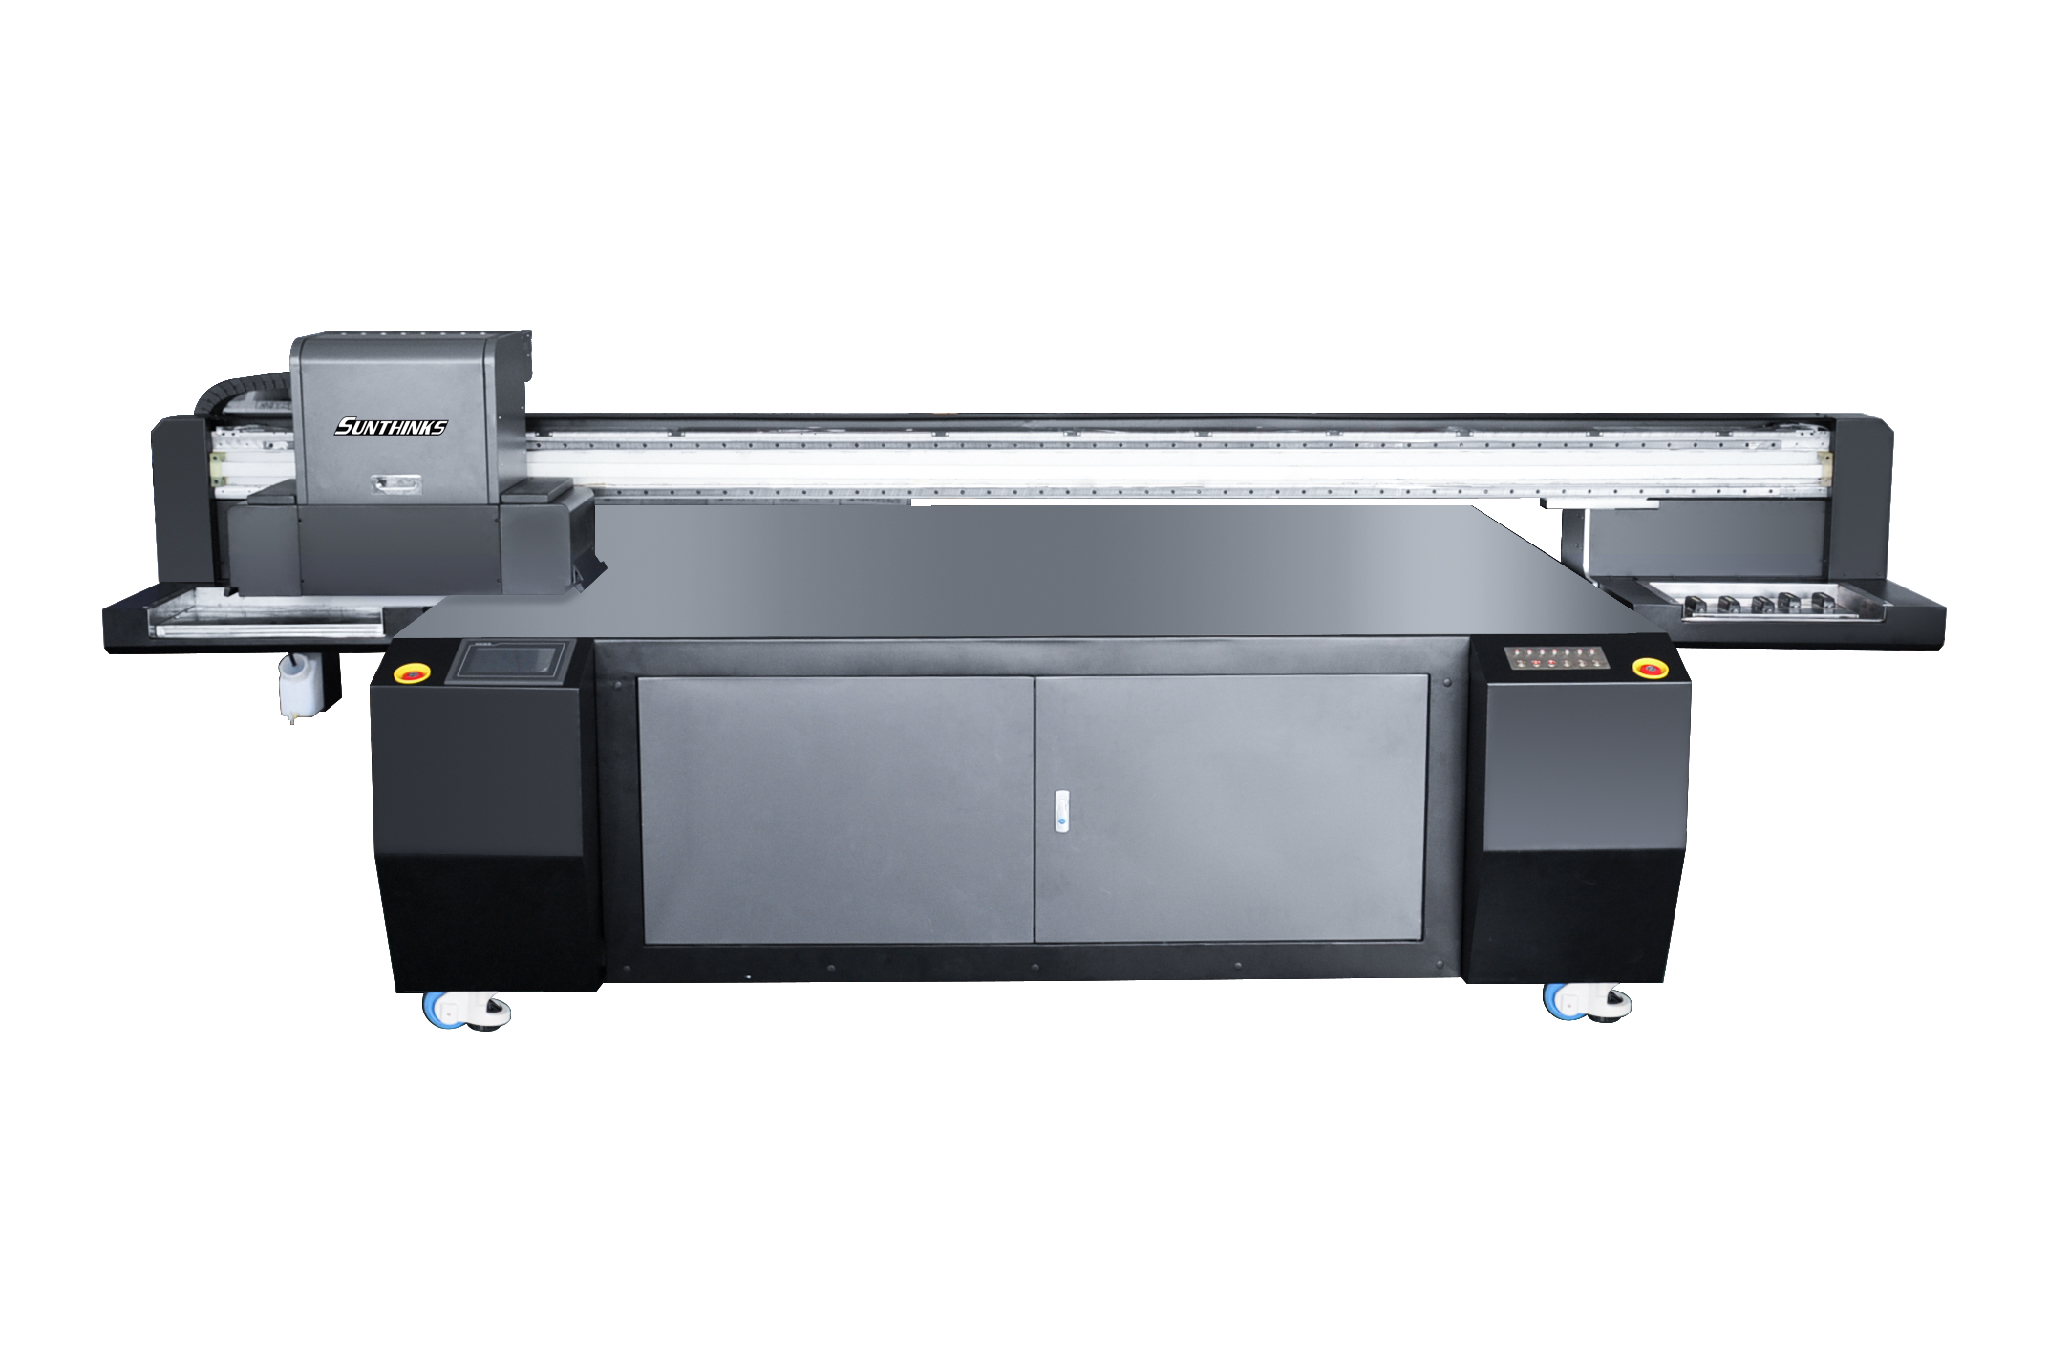 UV Fatbed Printer with Ricoh GH2220 heads 11